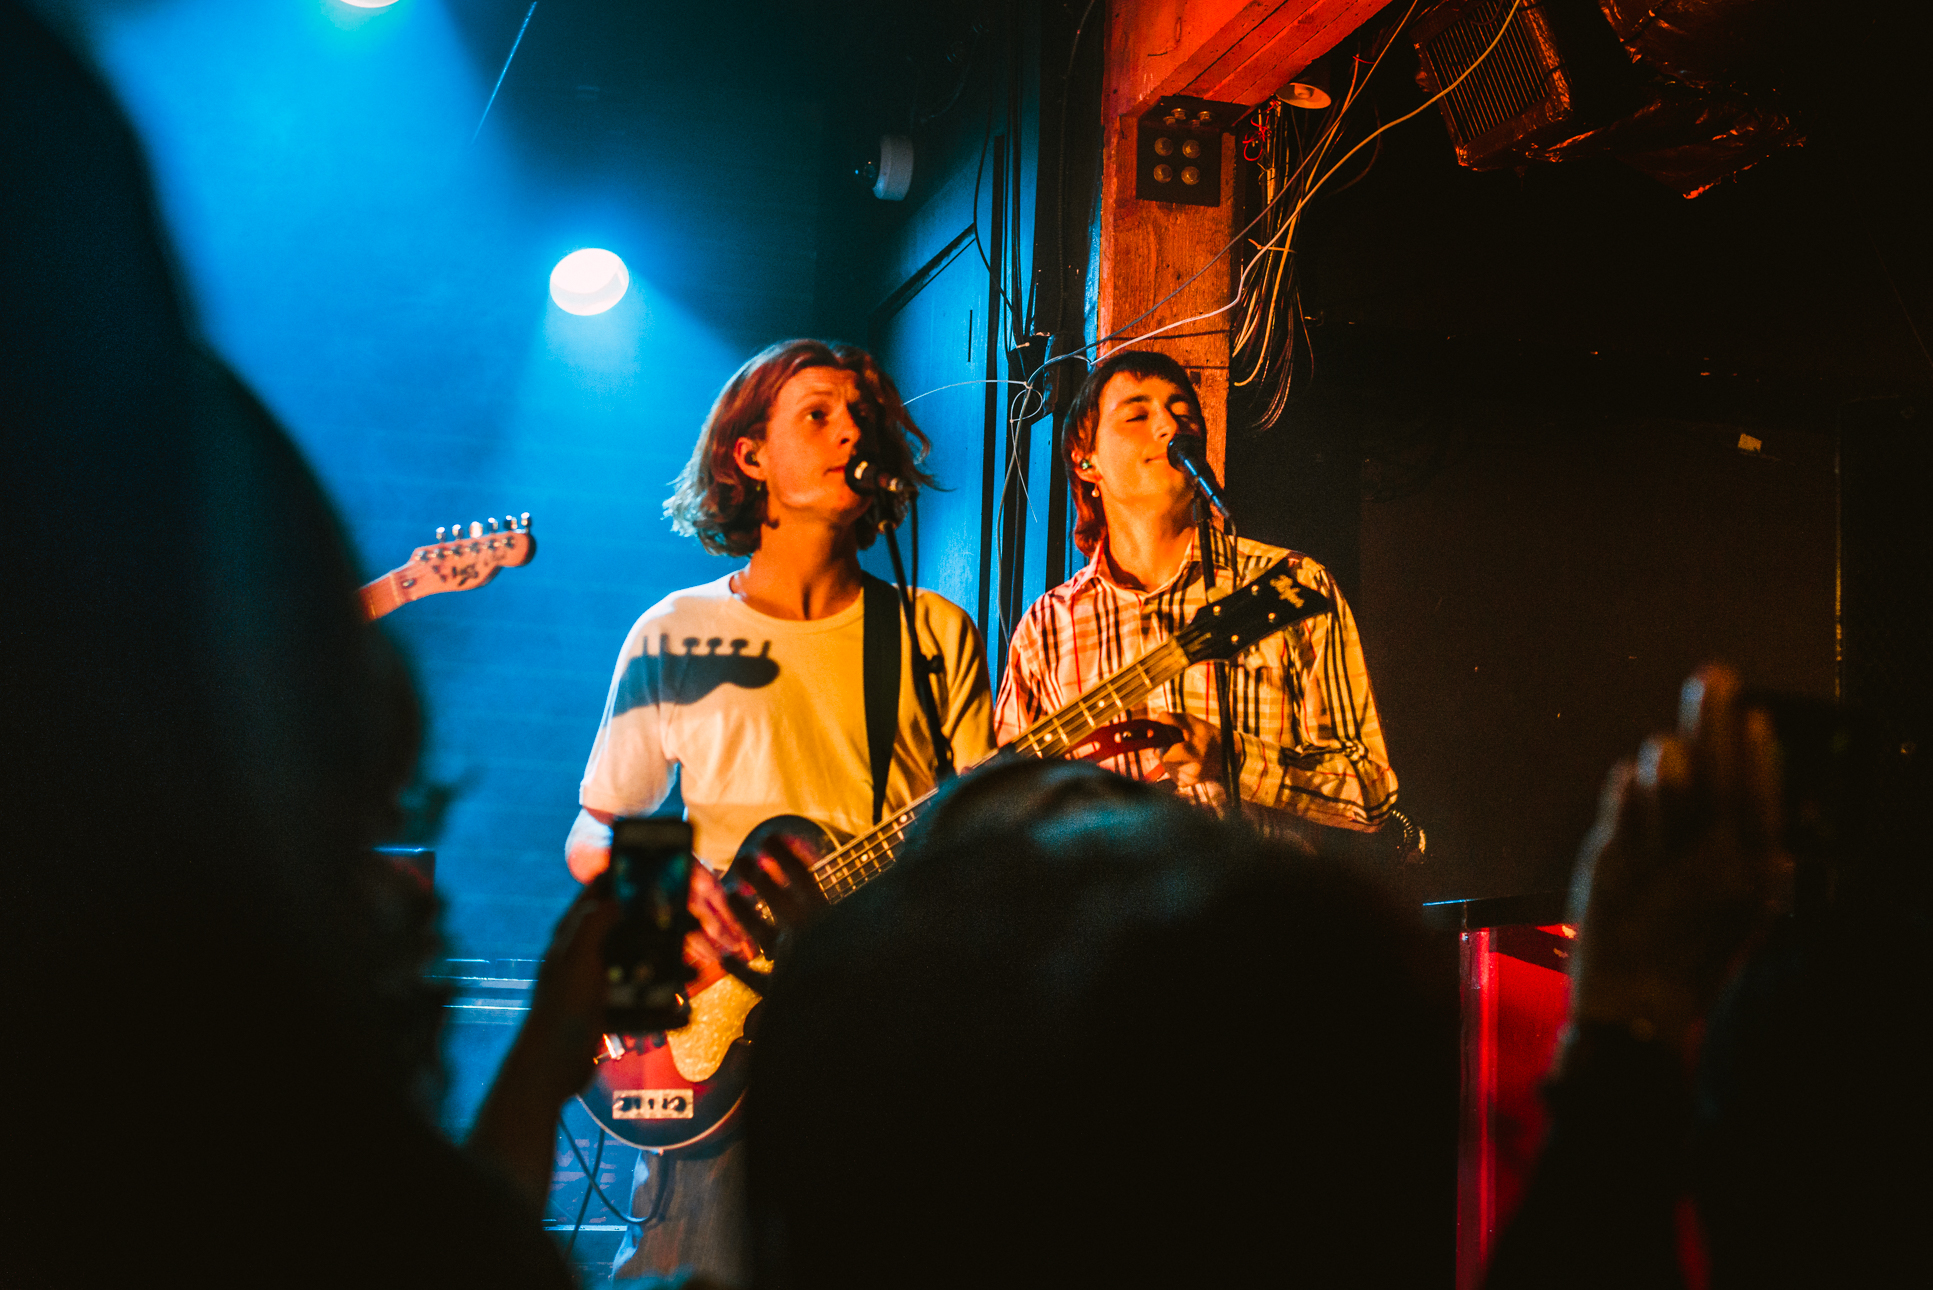 Parcels-FortuneSoundClub-Vancouver-March5th_ALICE HADDEN_DSC_1661.jpg